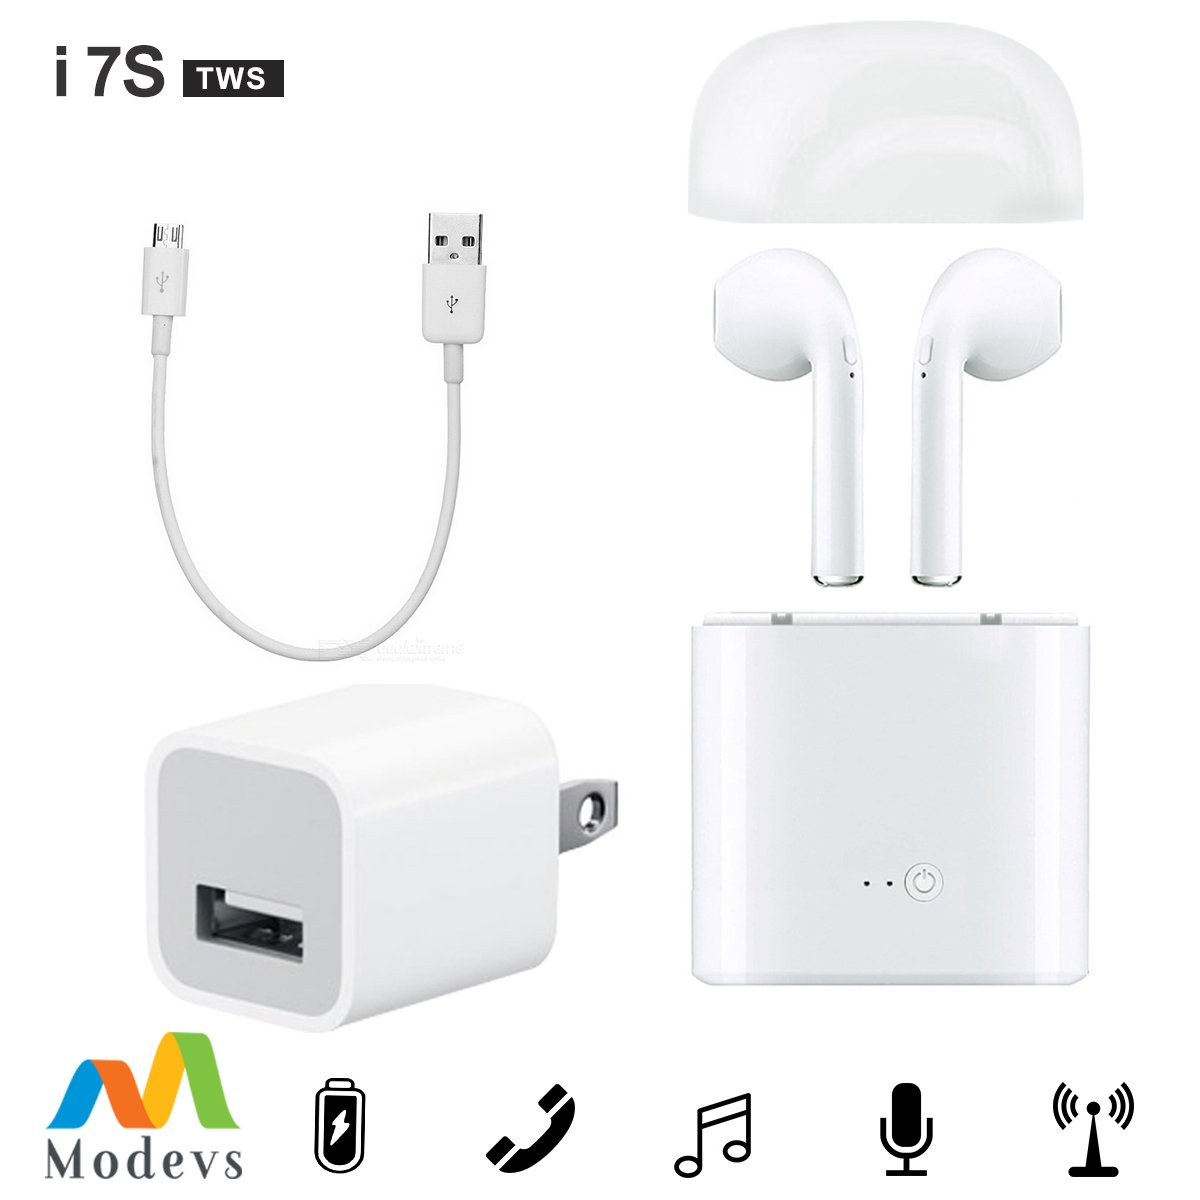 Best White Bluetooth Earbuds Bundle Modevs Wireless Headphones Earpieces Earphones With Charging Case And Micro Usb